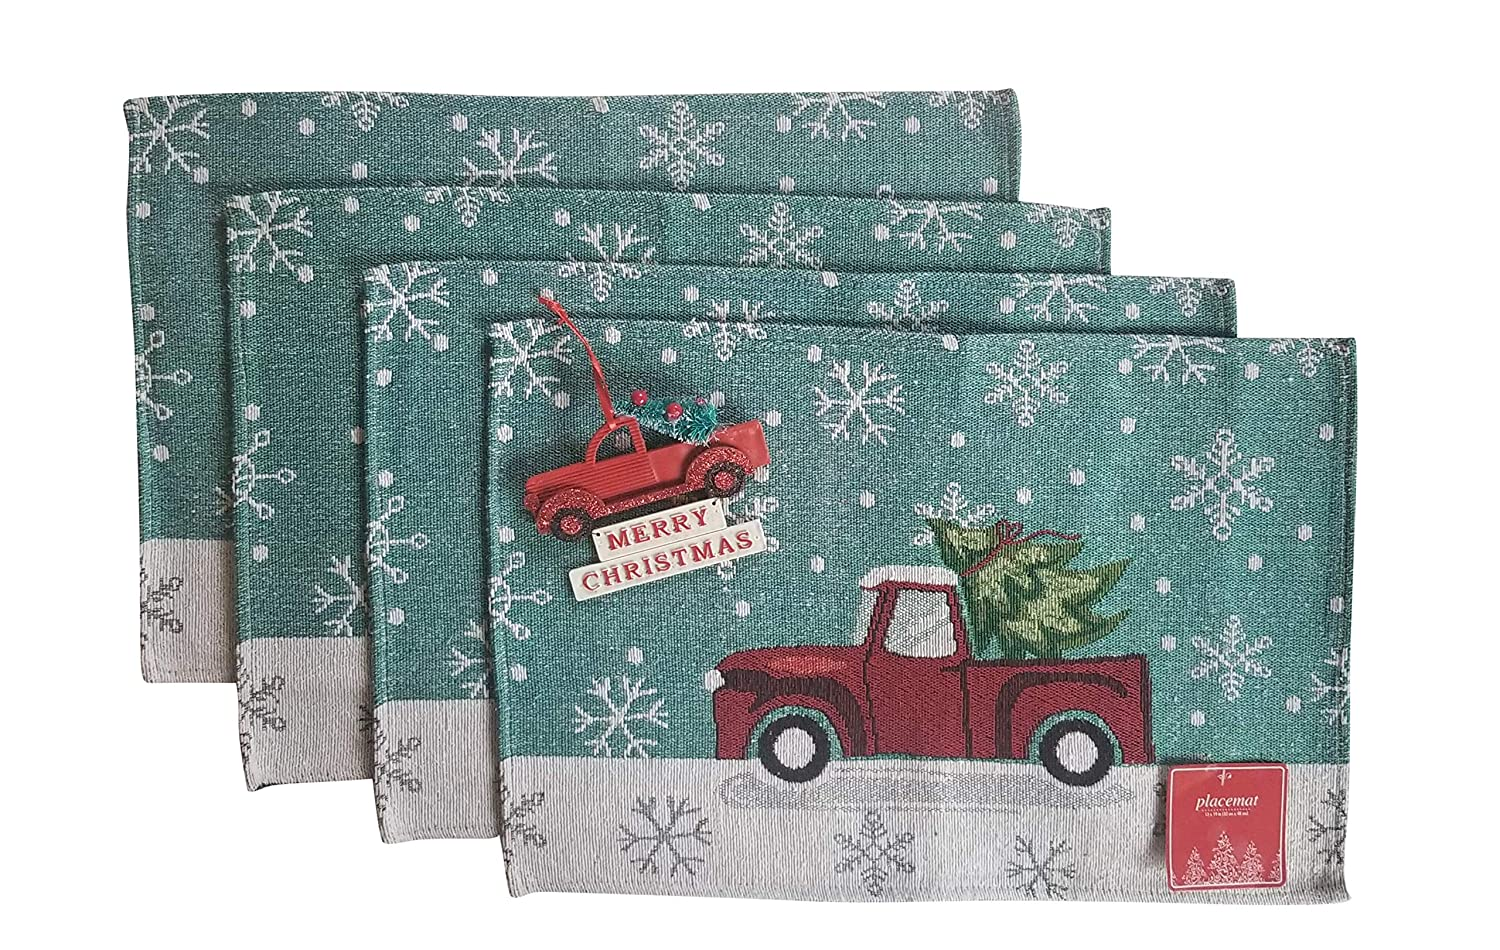 Seasonal Holiday Kitchen Linen Set Placemats Napkins Pot Holder Oven Mit (Retro Pickup Truck Placemats Set of 4 w Red Truck Ornament)